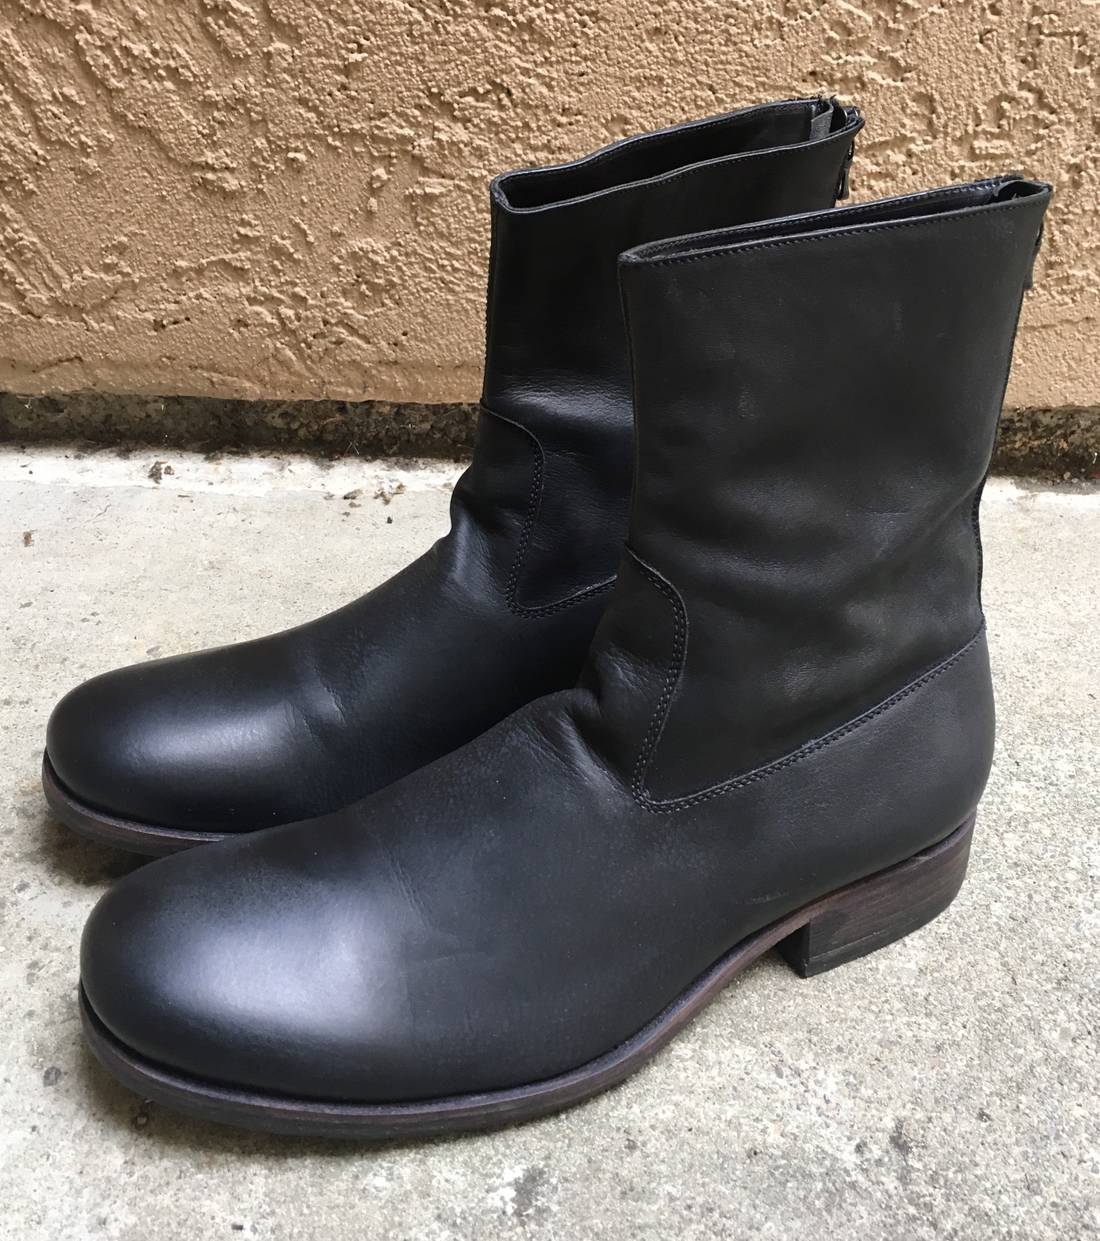 back zip boots - Black C Diem